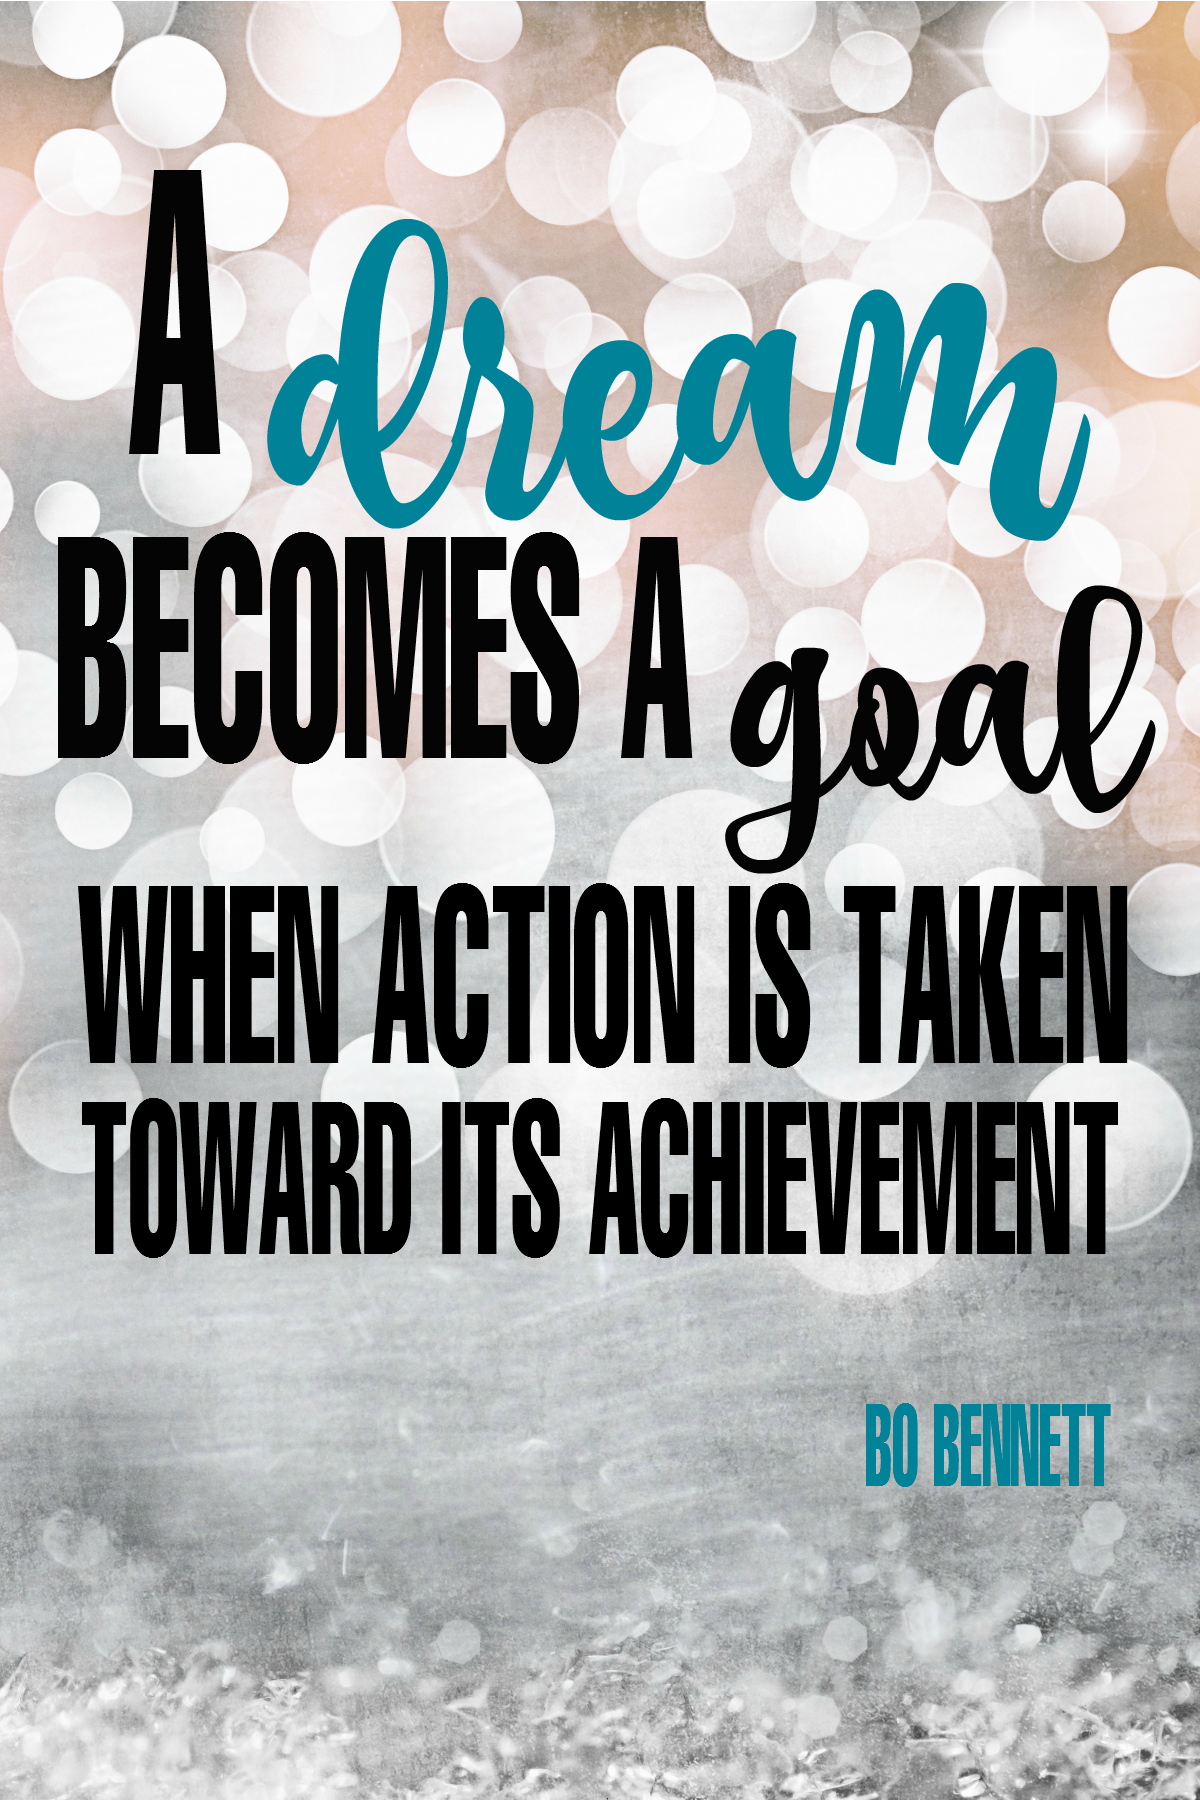 Quotes About Goals 17 Inspiring Quotes About Goals  Personal Development